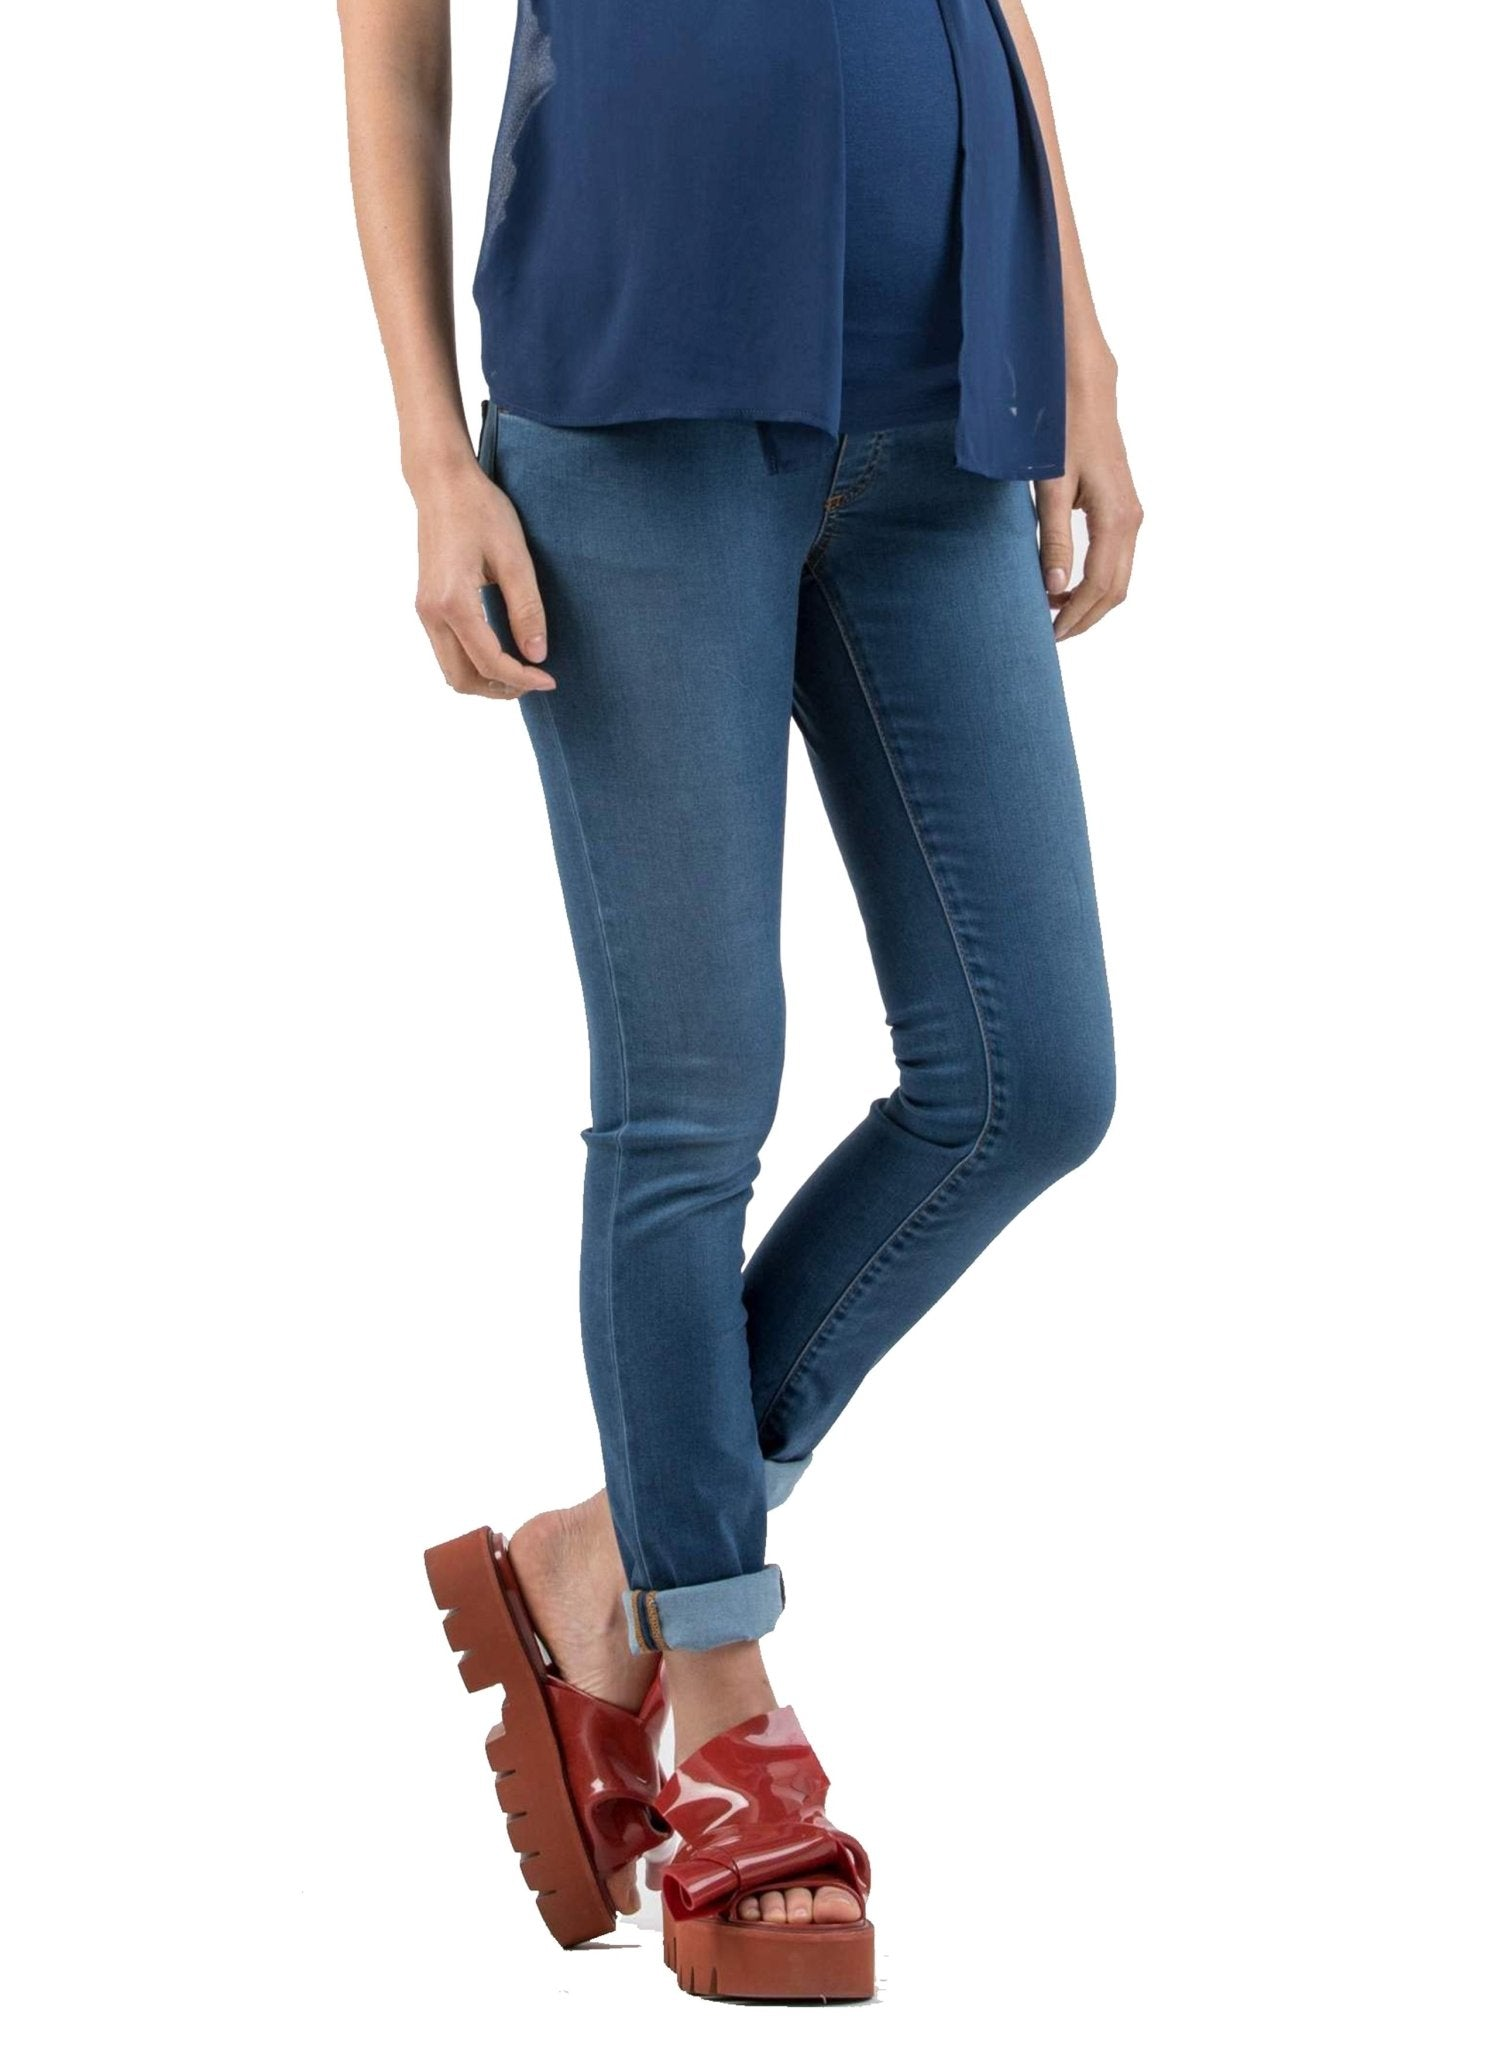 Skinny Fit Maternity Jeans in Tencel - Mums and Bumps